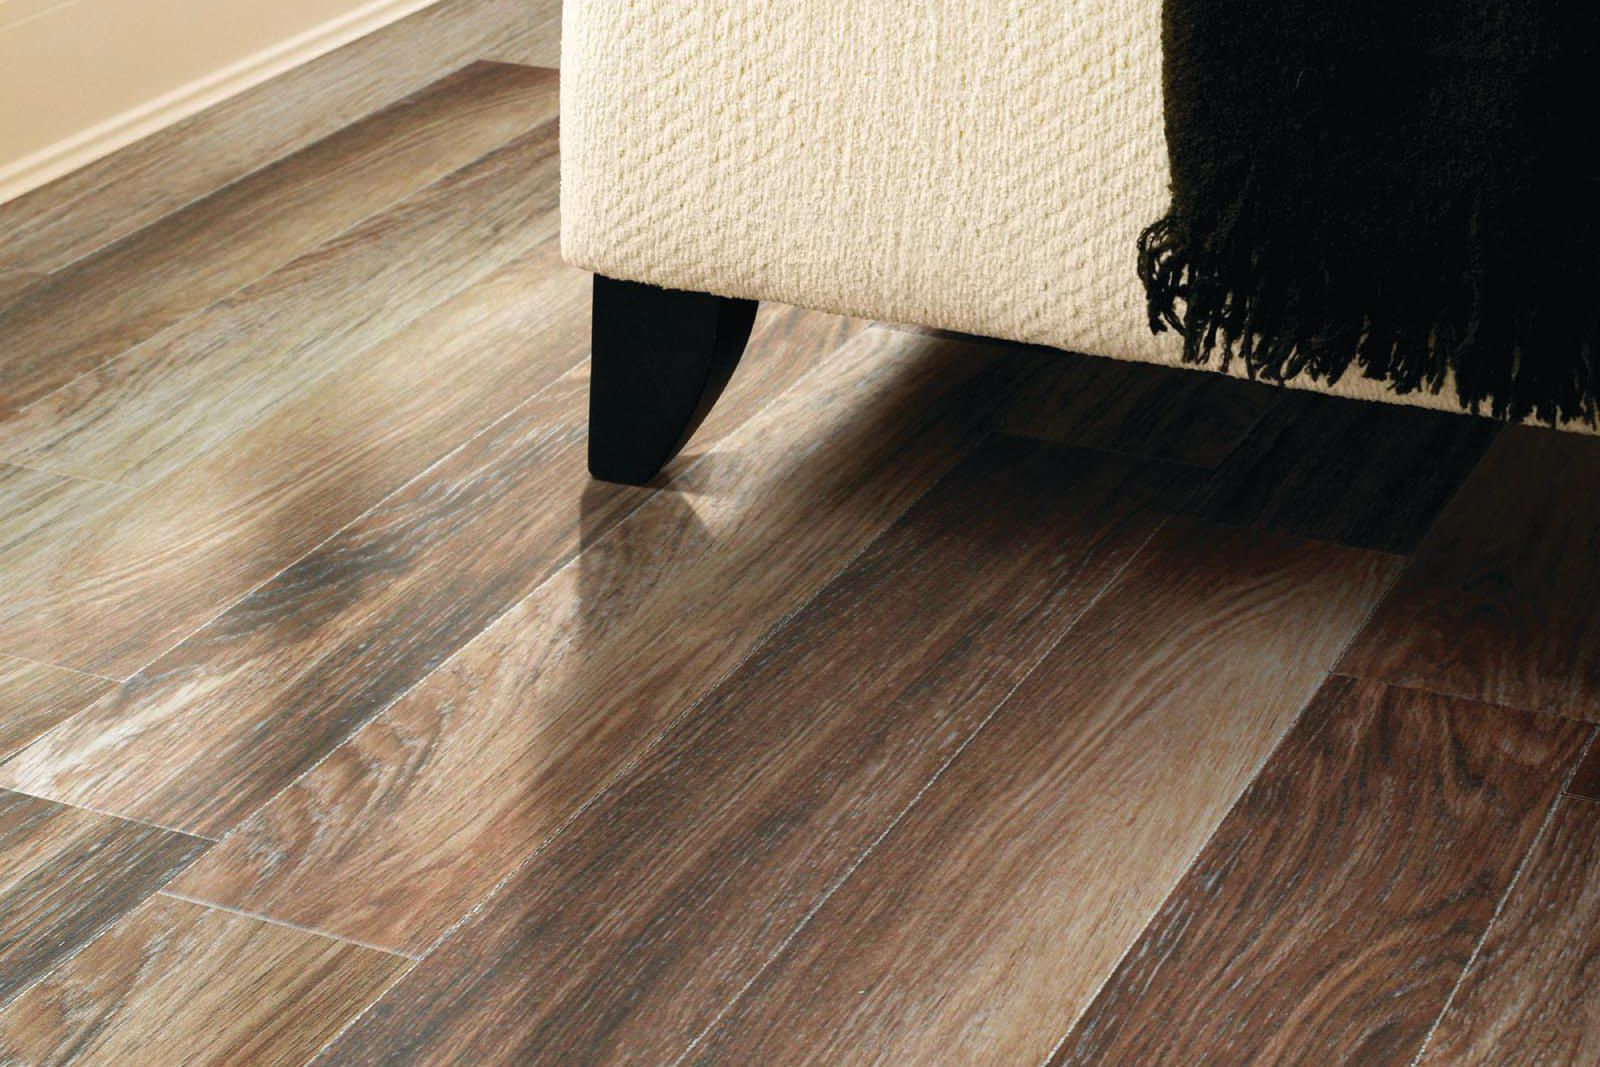 hardwood porcelain tile flooring of mediterranea the warm look of wood combines with the cool touch of inside sandal wood porcelain tile in palm by mediterranea usa